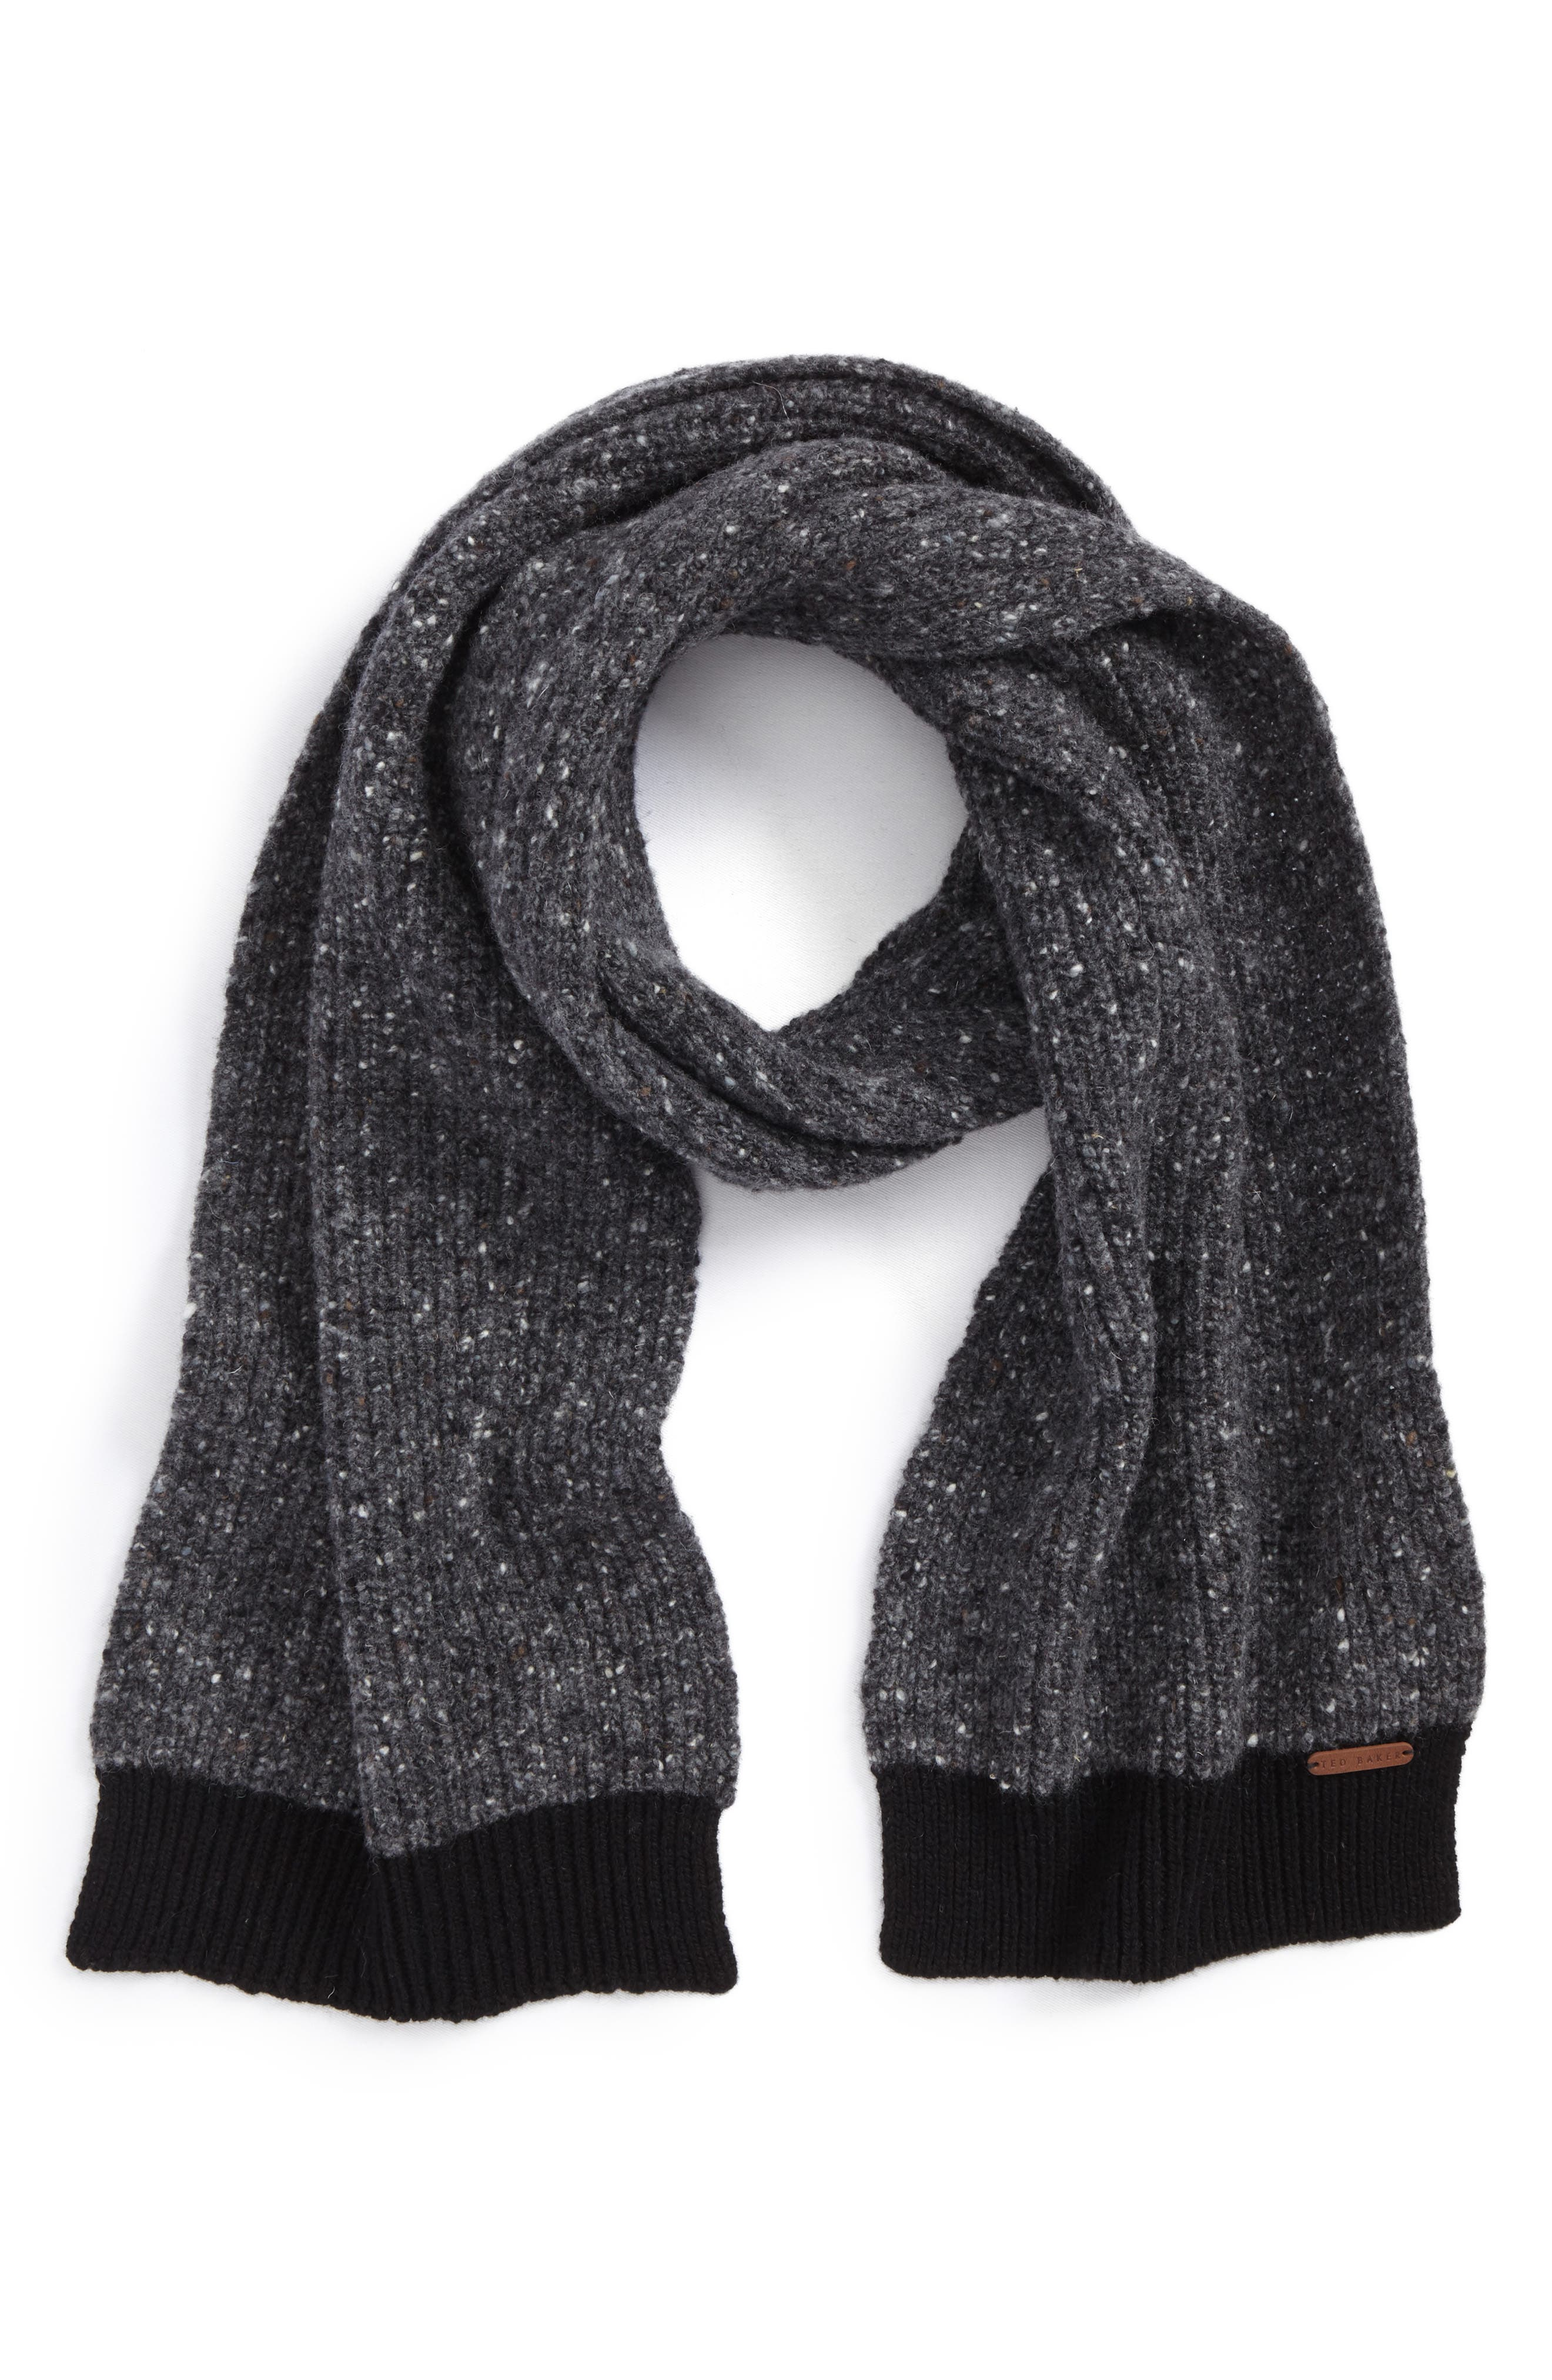 Oaks Donegal Scarf,                             Main thumbnail 1, color,                             Charcoal